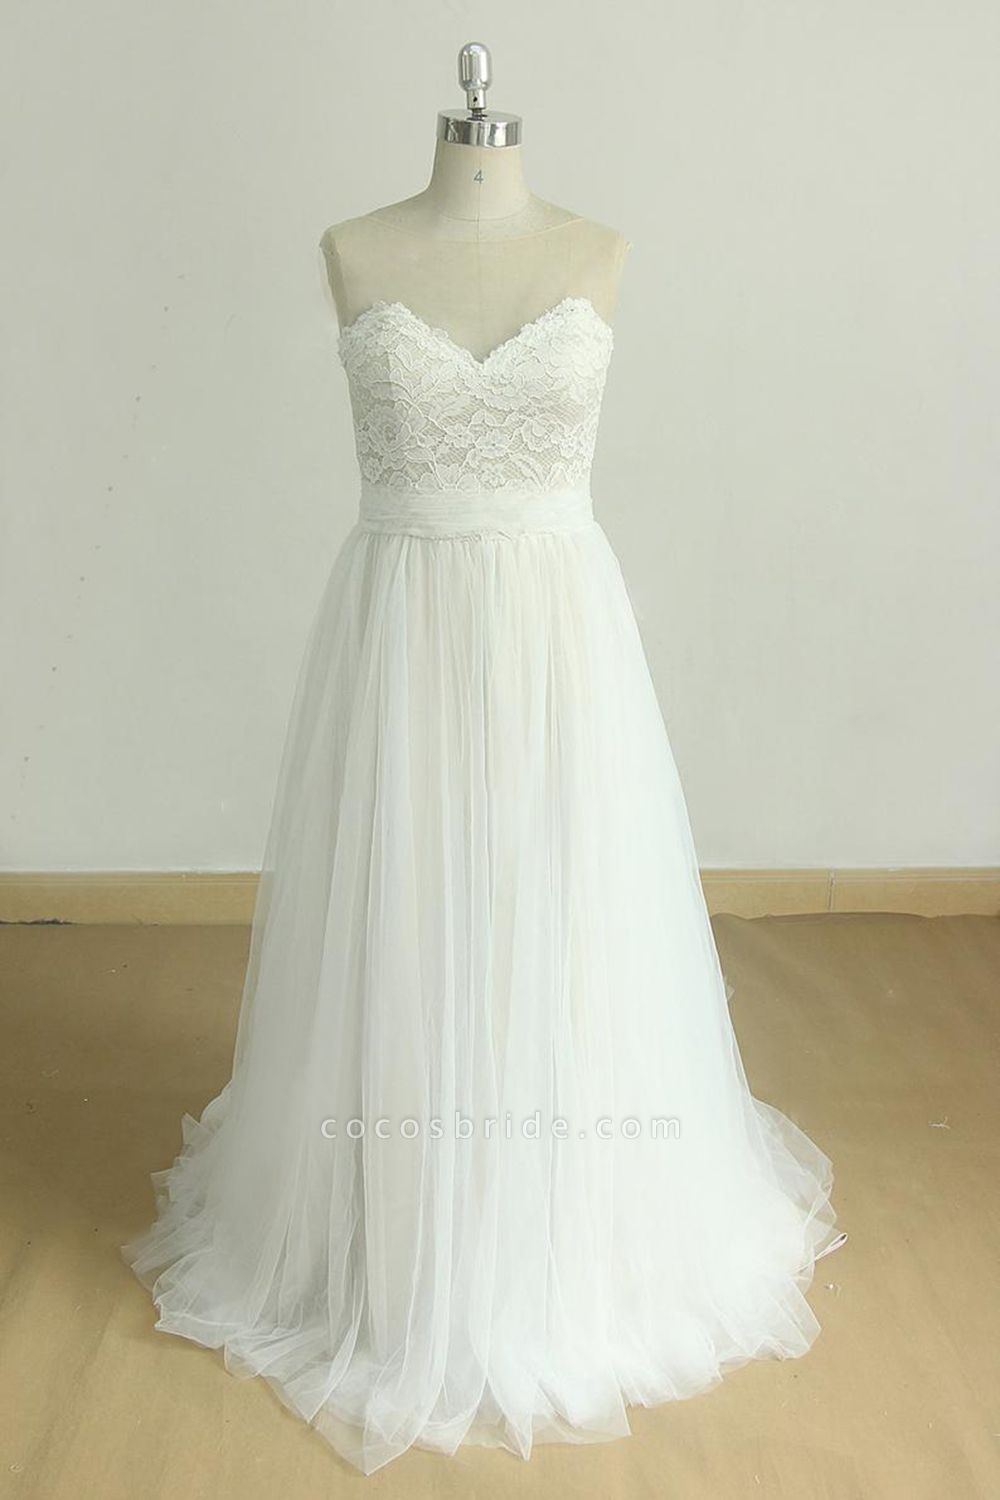 Graceful Illusion Lace Tulle A-line Wedding Dress